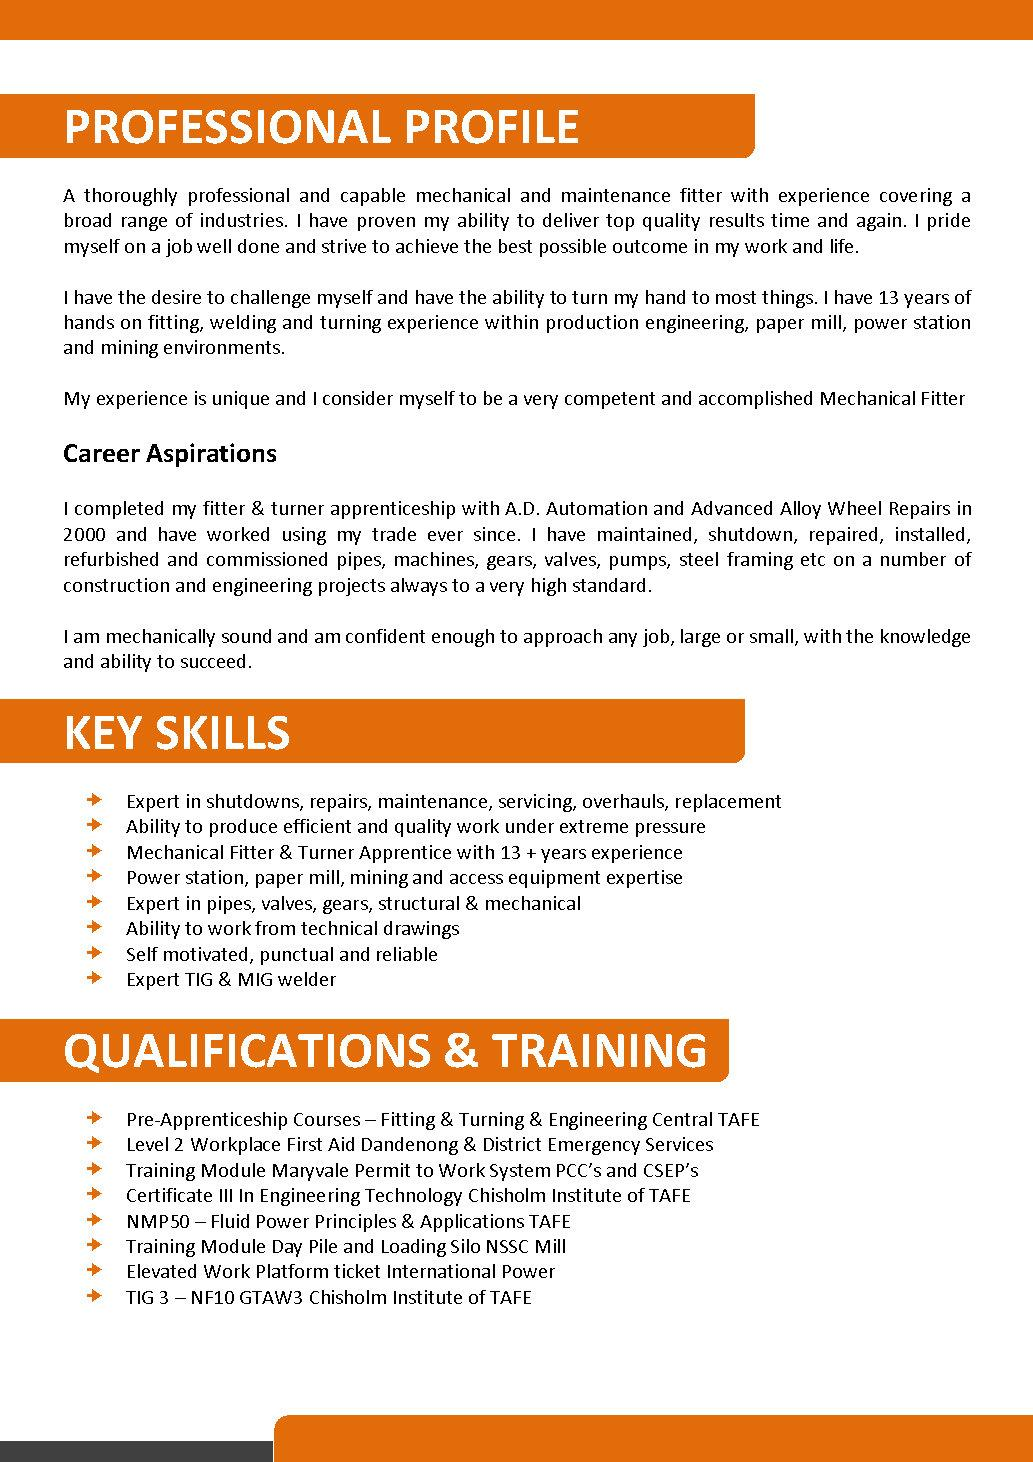 Resume Format Australia Sample Resume Format Australia Sample Curriculum  Vitae Vs Resume Format Best Resume Format